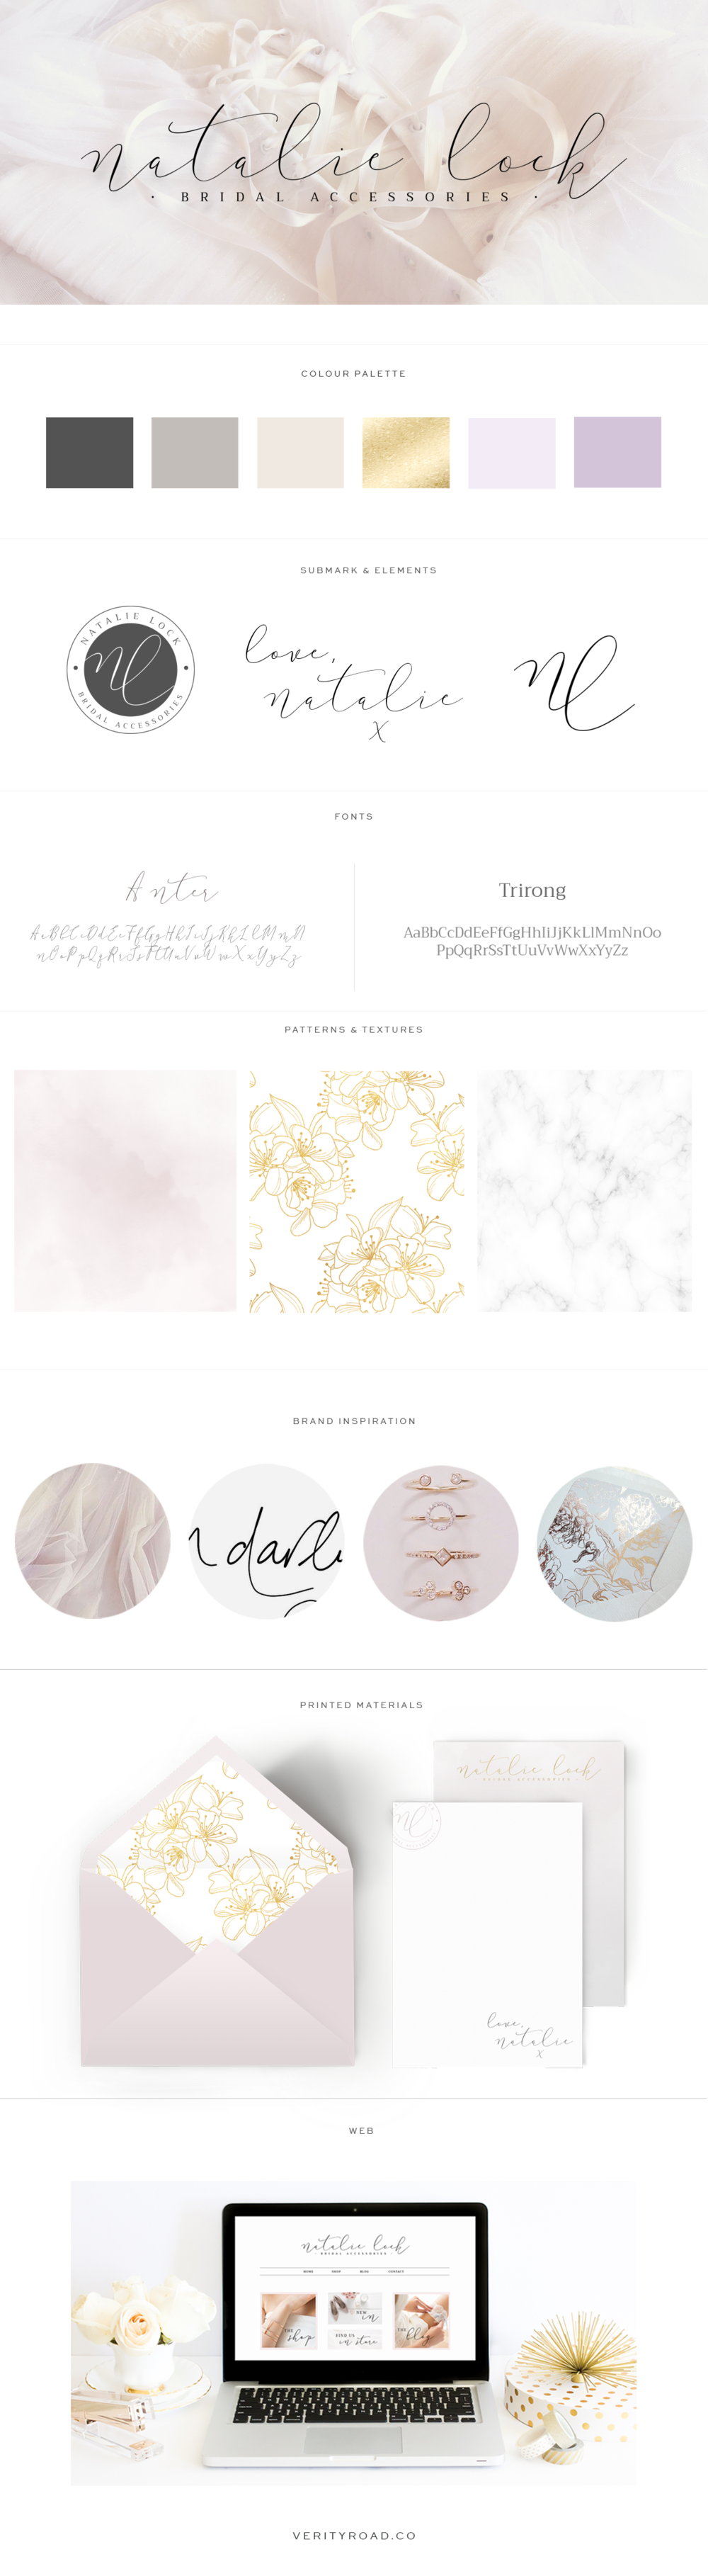 Brand style board for Natalie Lock Bridal   This luxury branding for a bridal boutique business, wedding business branding, female entrepreneur has the logo design, variation and submark, a muted lilac, ivory, gold, champagne, charcoal color palette with gorgeous script font and serif typography. Feminine branding includes watercolor texture, marble, and floral pattern. Click for mood board & social media branding and web design for feminine business.